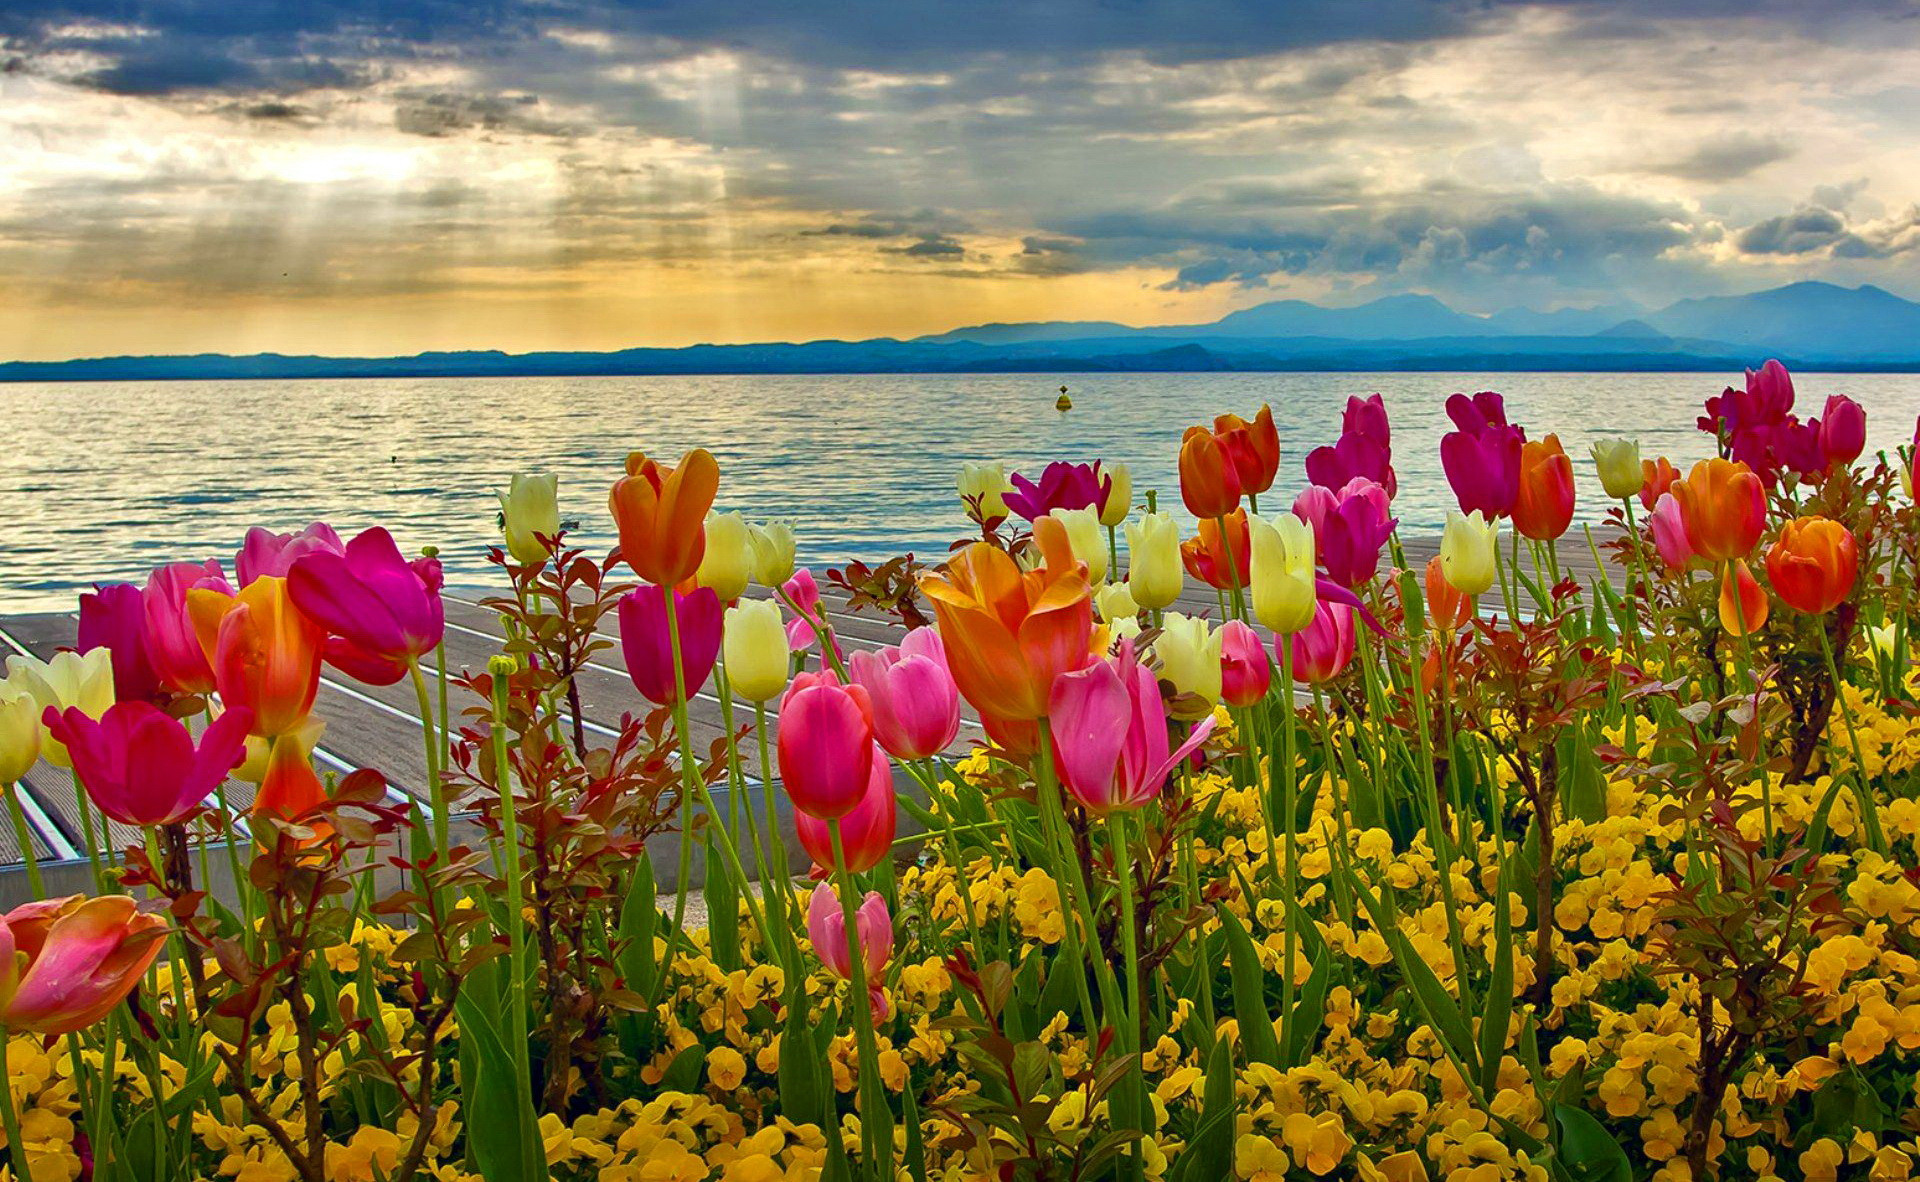 Beautiful Spring Images Download Pixelstalk Net